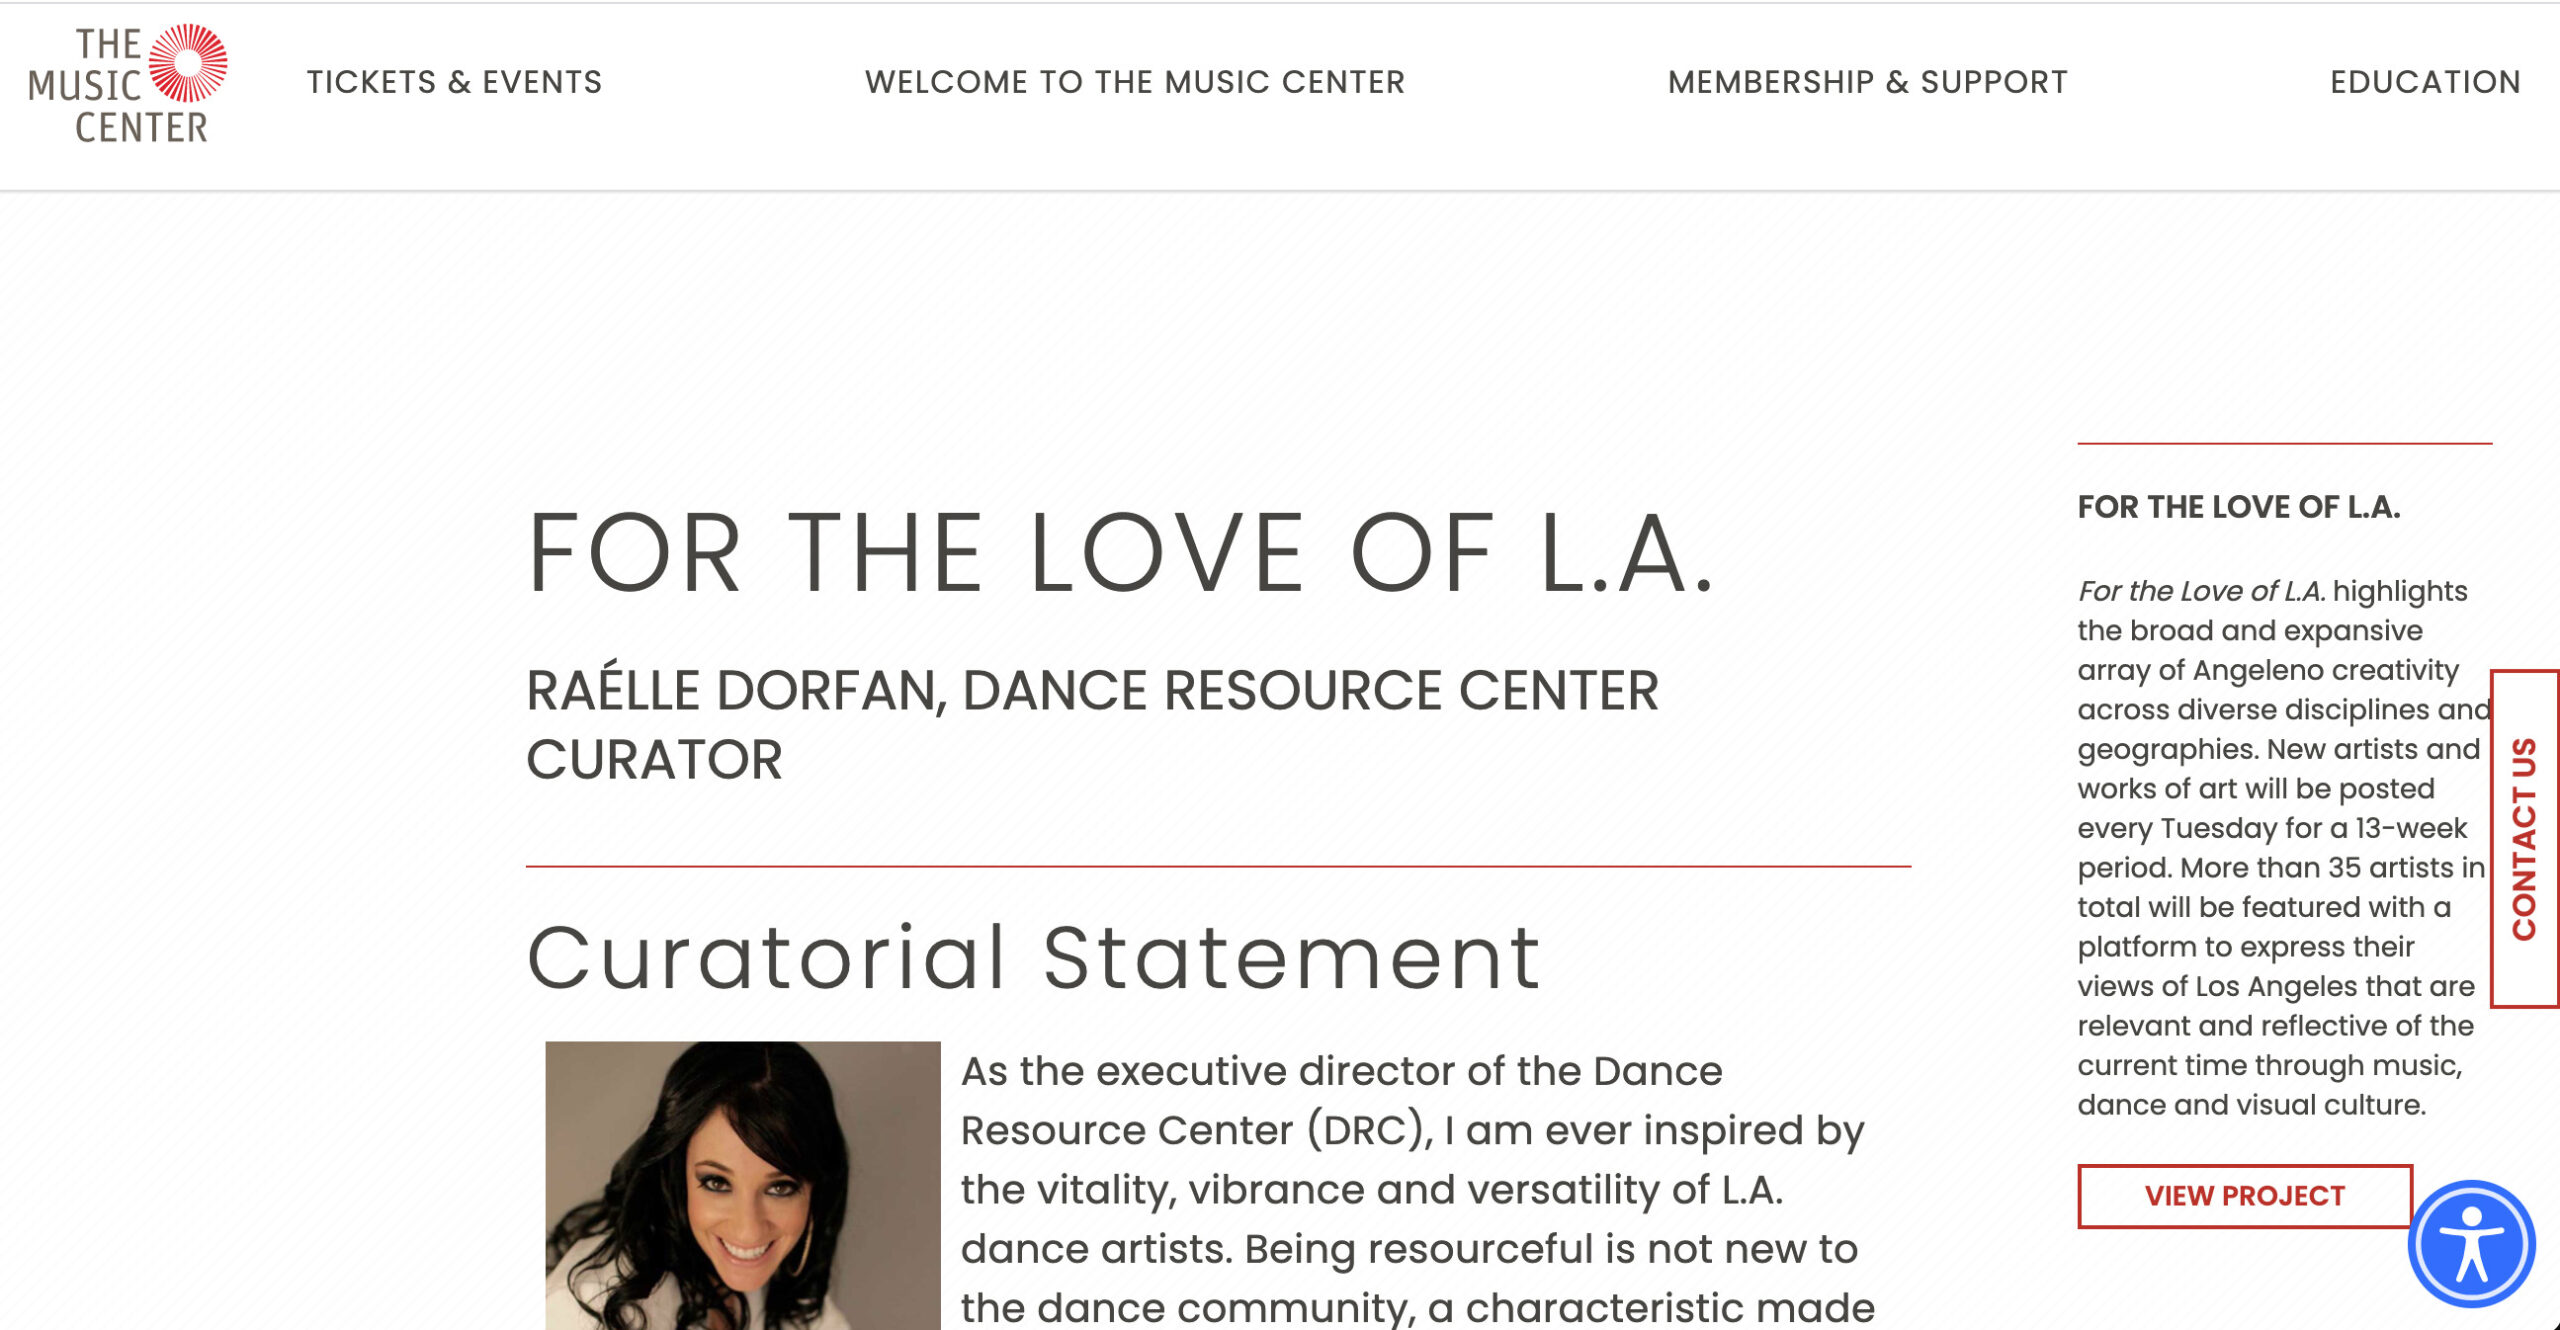 For the Love of LA collaboration with the Music Center and the Dance Resource Center.